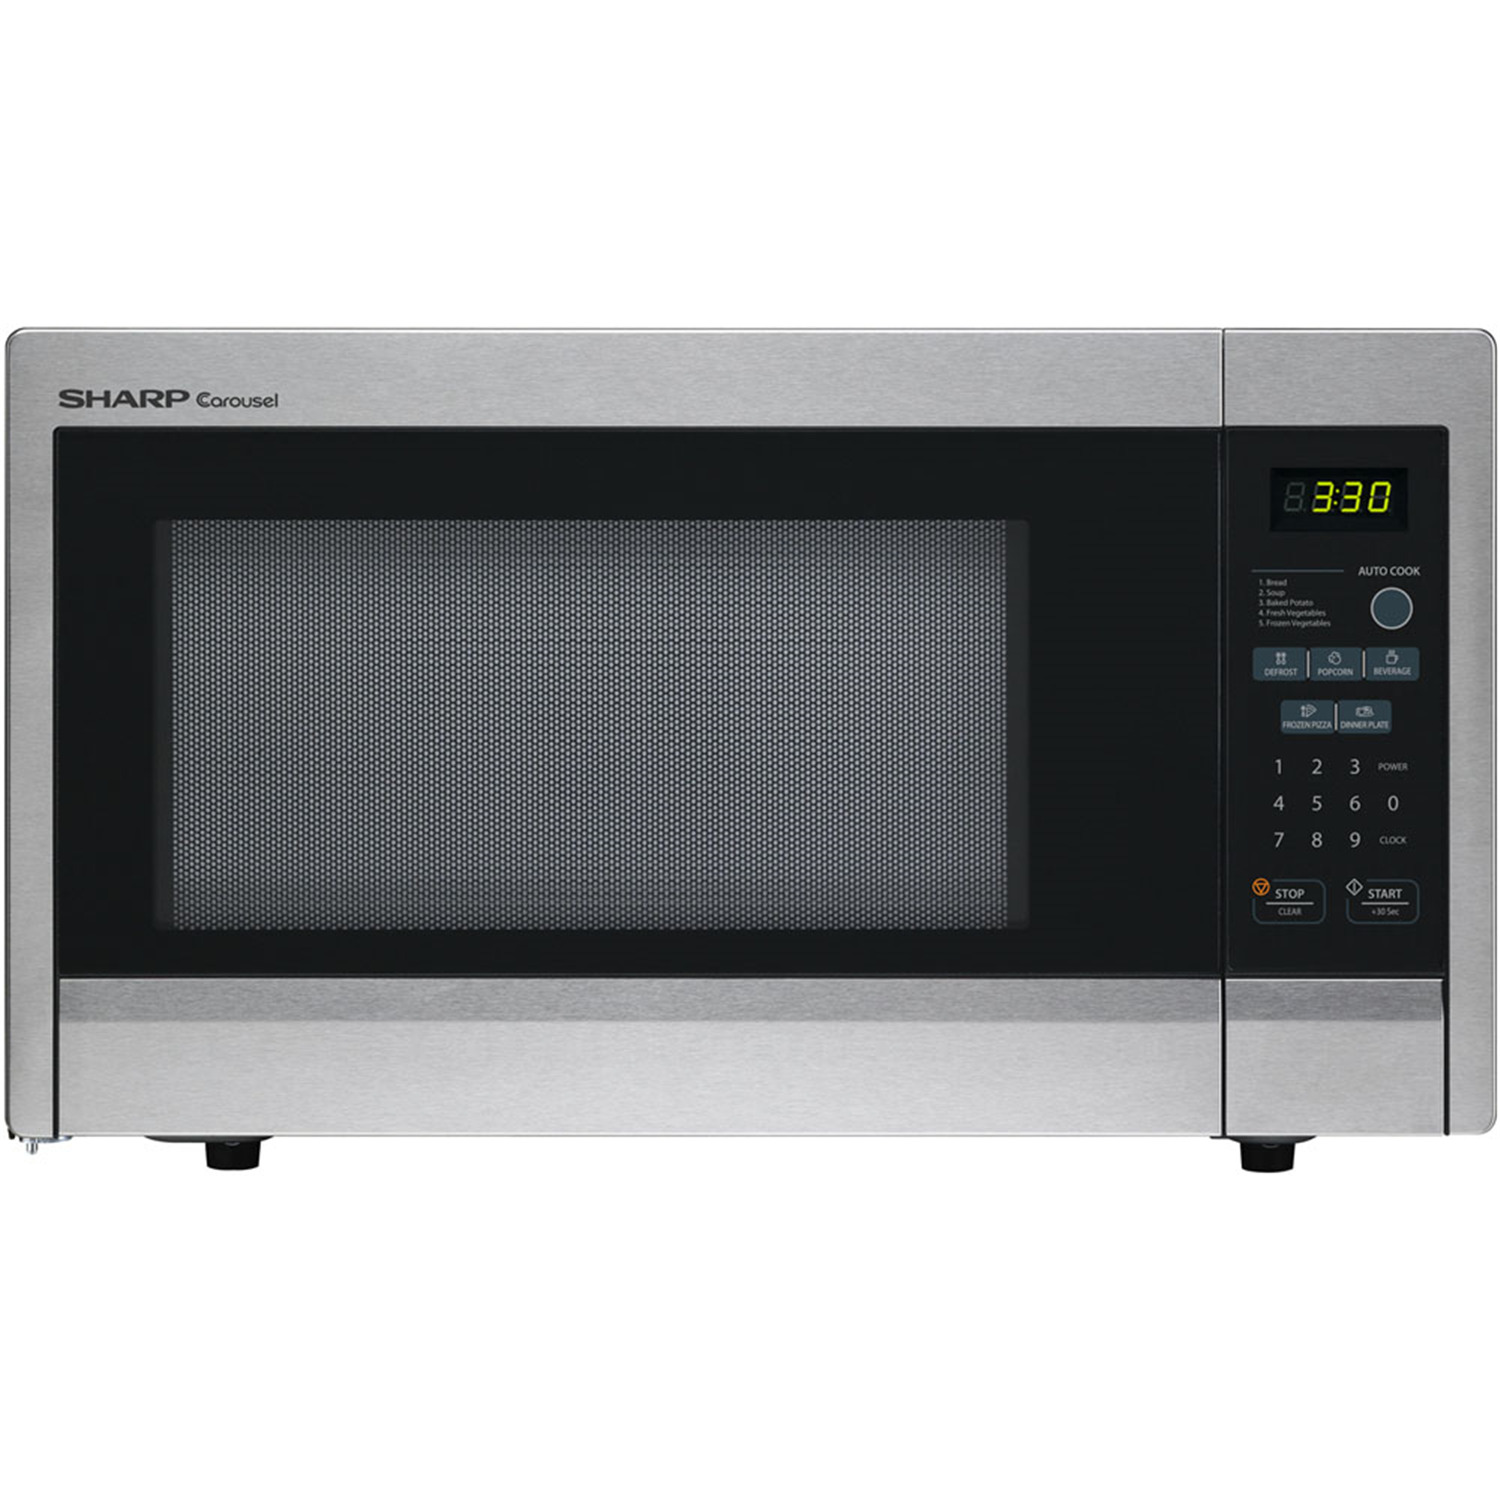 Countertop Microwave What To Look For : Sharp Carousel 1.1 Cu. Ft. 1000W Countertop Microwave Oven by OJ ...